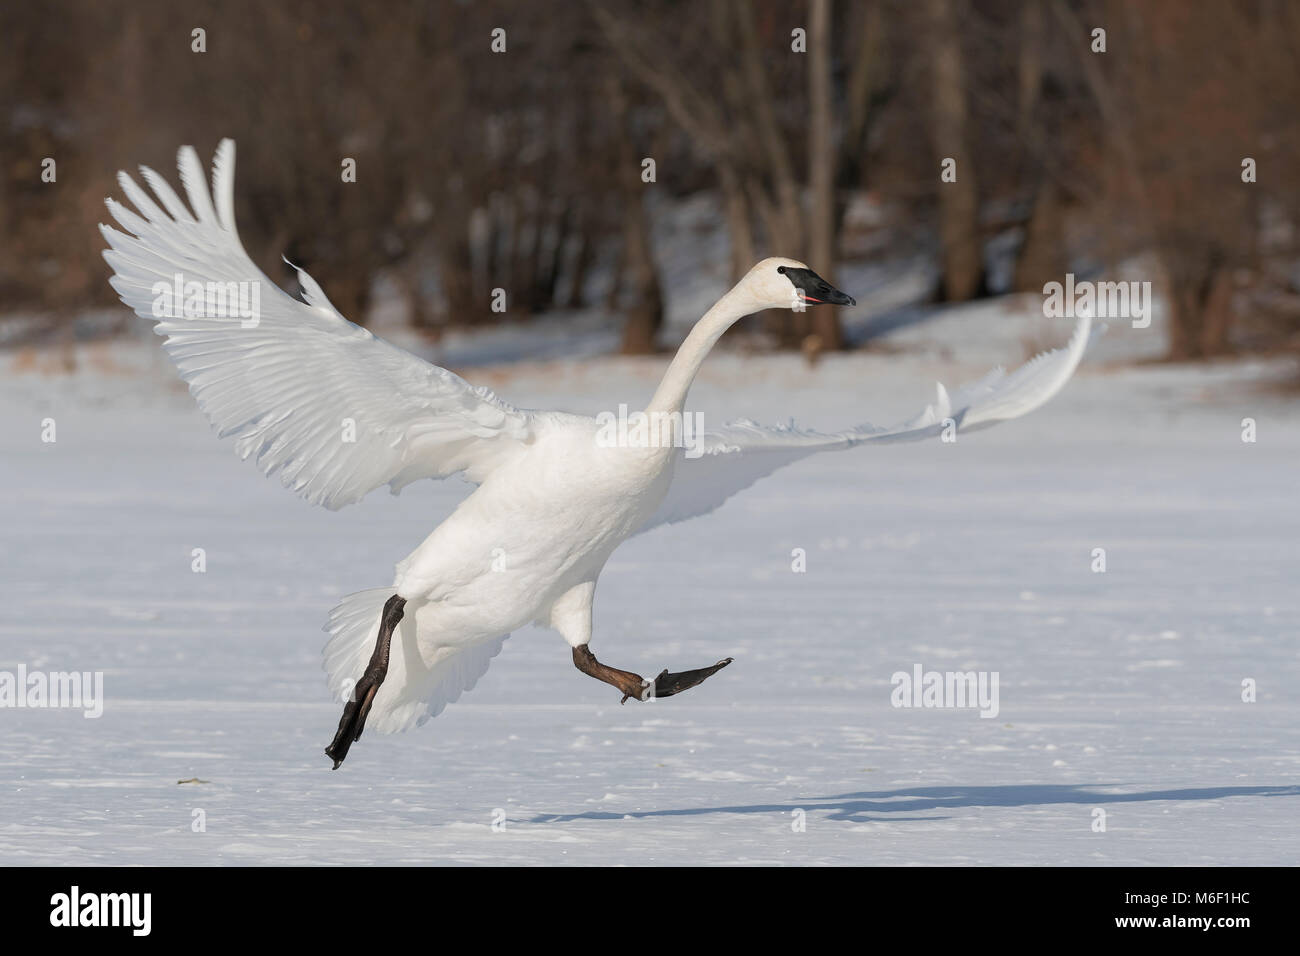 Trumpeter swan (Cygnus buccinator),  St. Croix River between Minnesota and Wisconsin. Hudson, WI USA, by Dominique - Stock Image